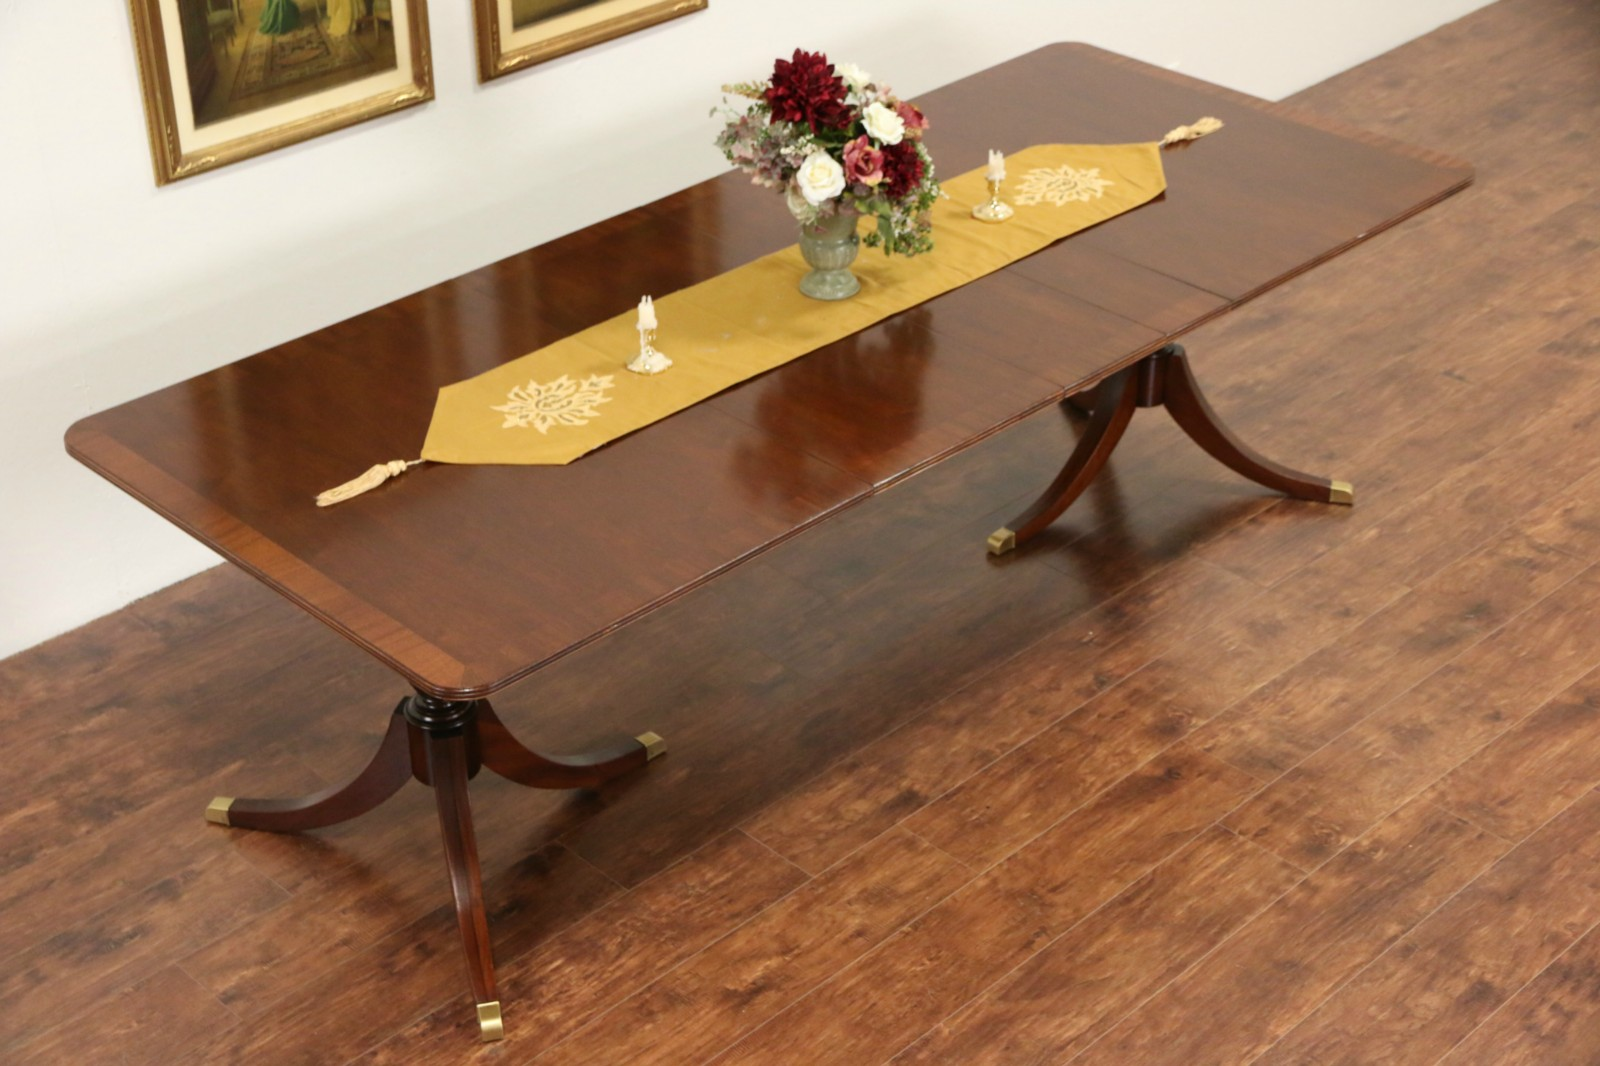 Banded Mahogany Vintage Double Pedestal Dining Table Leaves